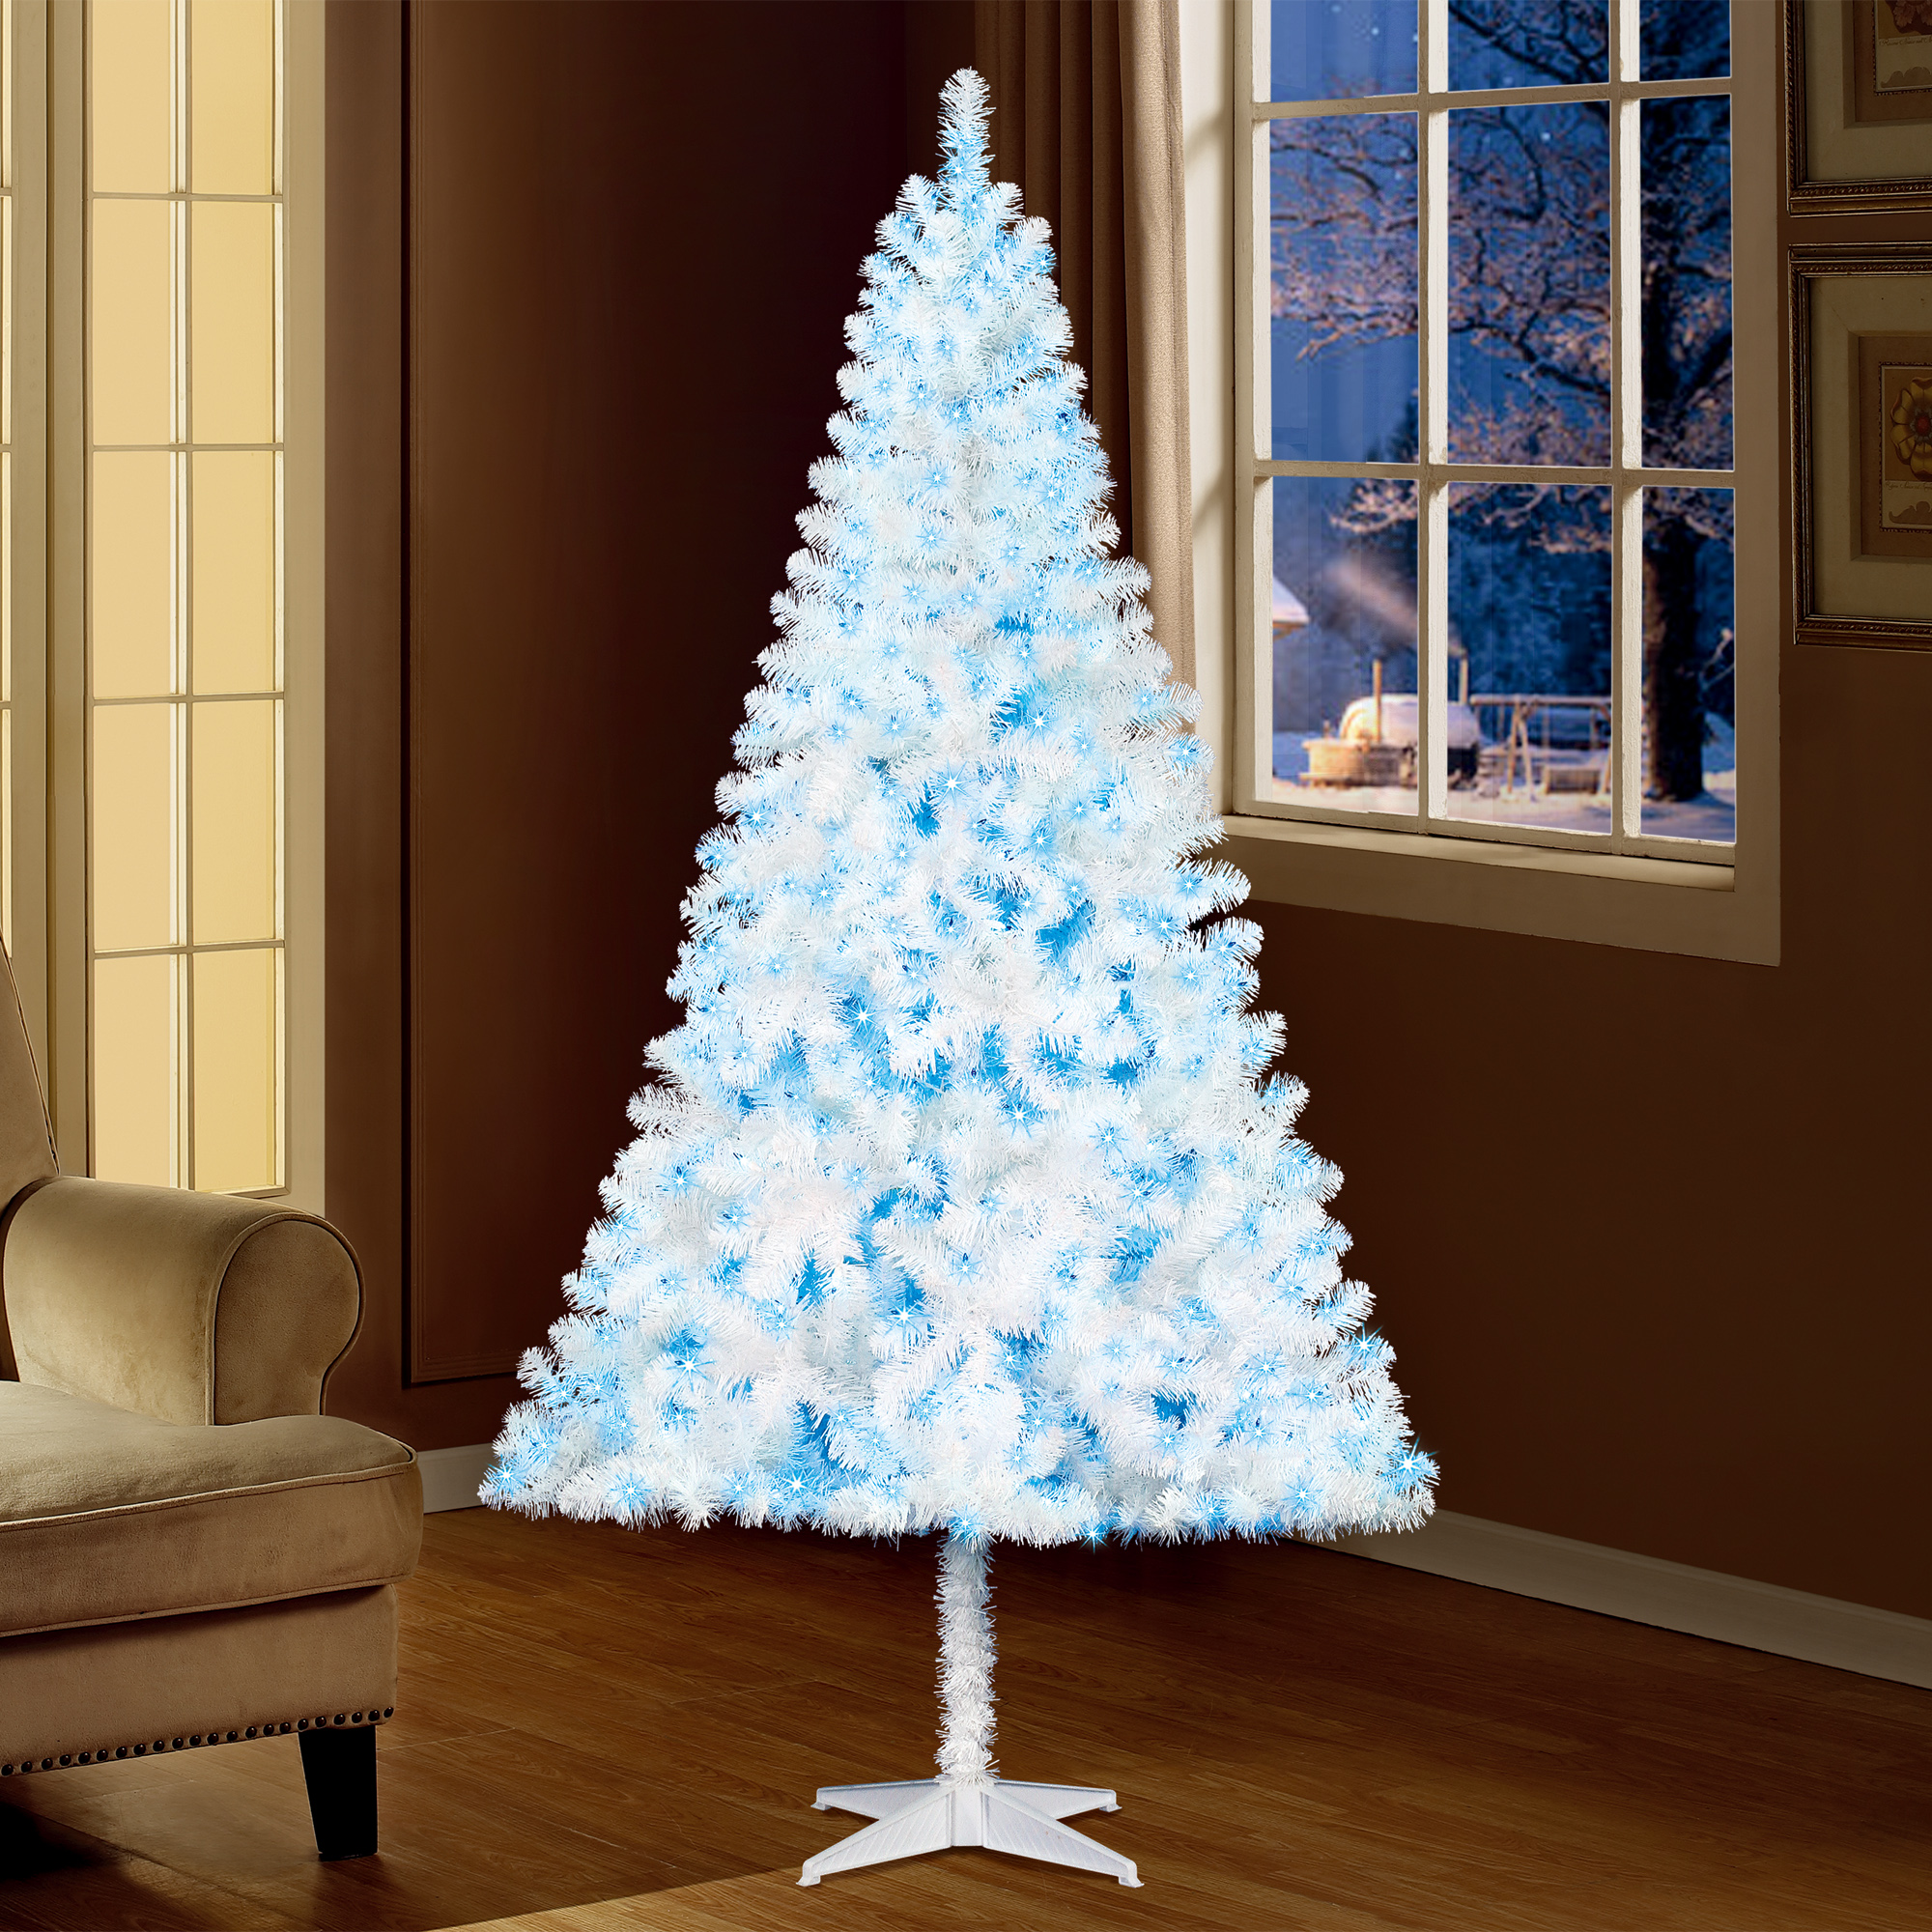 Holiday Time Prelit Pine Christmas Tree 6.5 ft, White ...